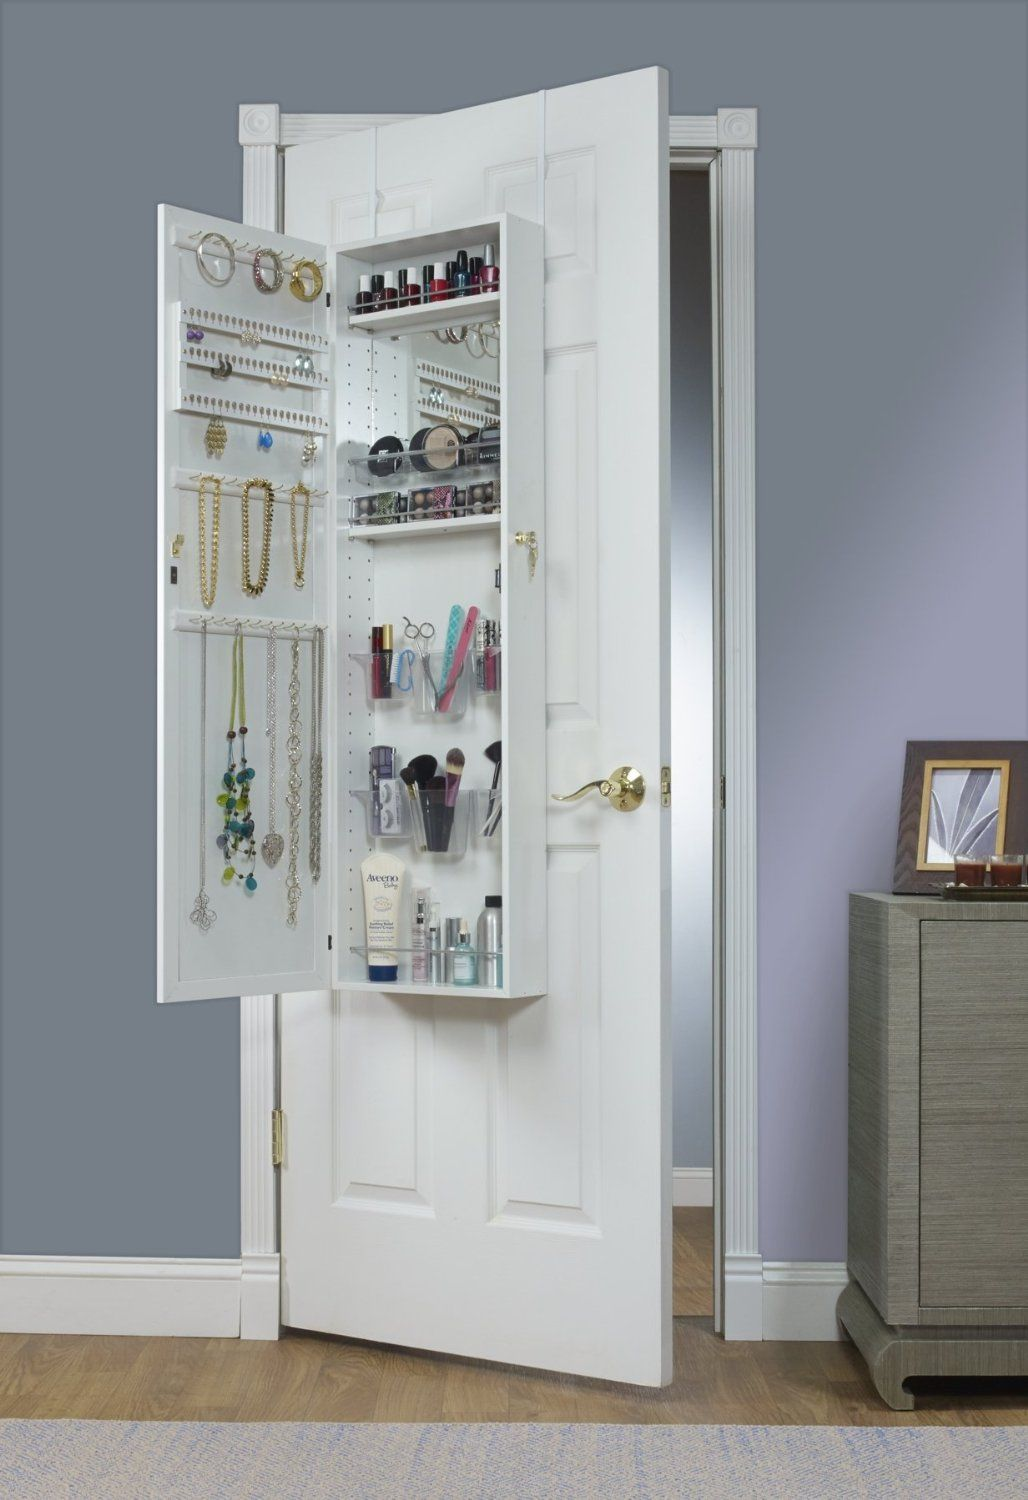 Bon Mirrotek Over The Door Combination Makeup And Jewelry Armoire, $134.99,  Amazon